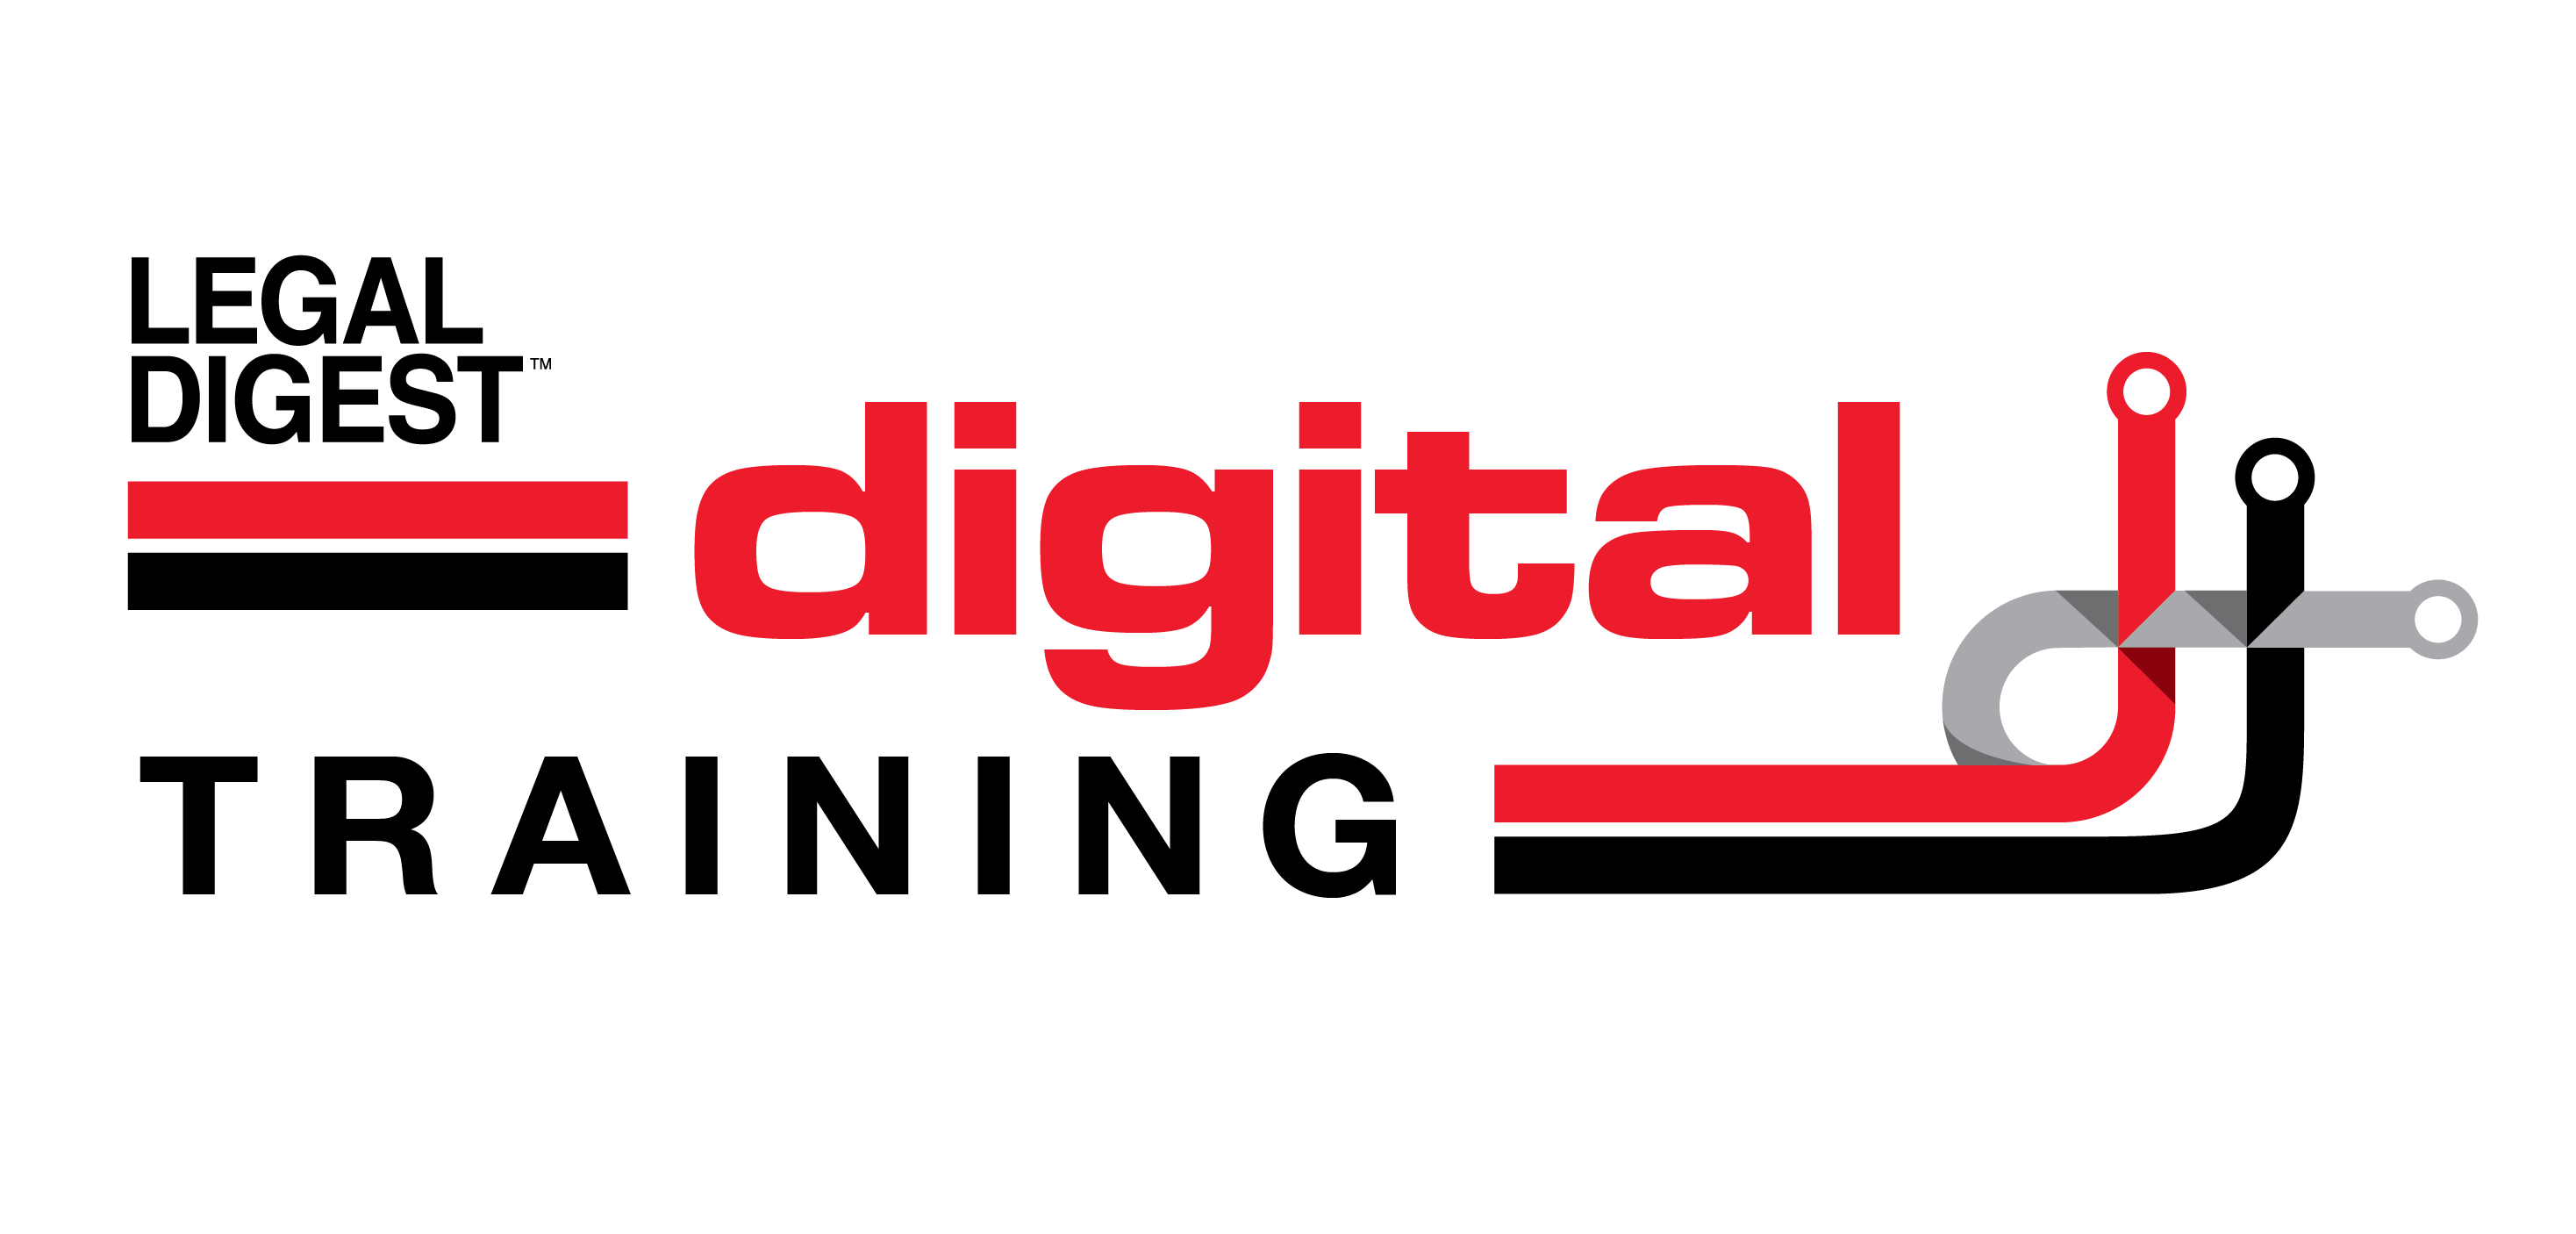 Legal Digest Digital Training